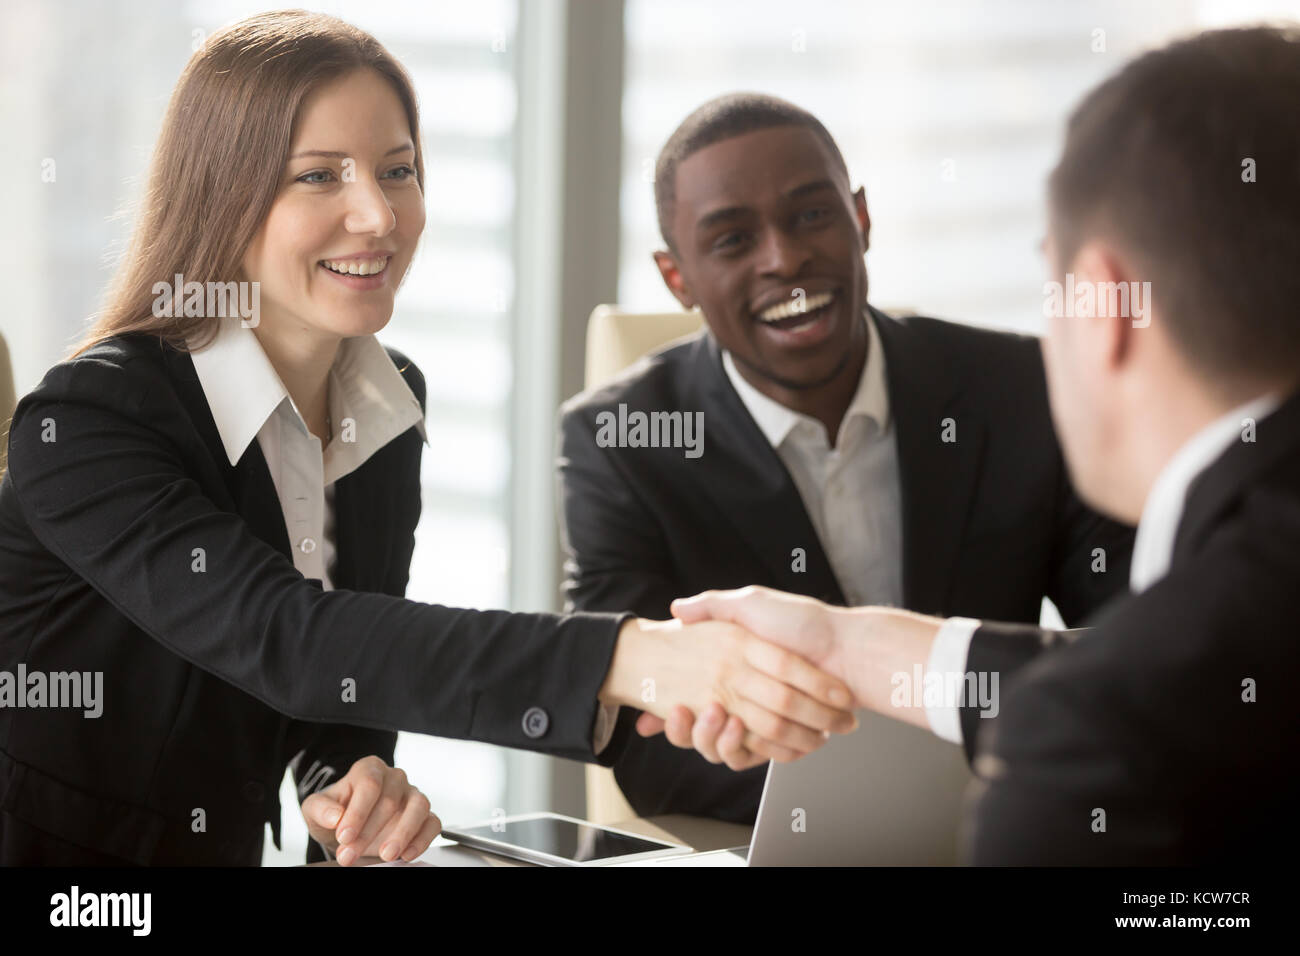 Beautiful smiling businesswoman with african american partner shaking hand and welcoming new team member, business - Stock Image